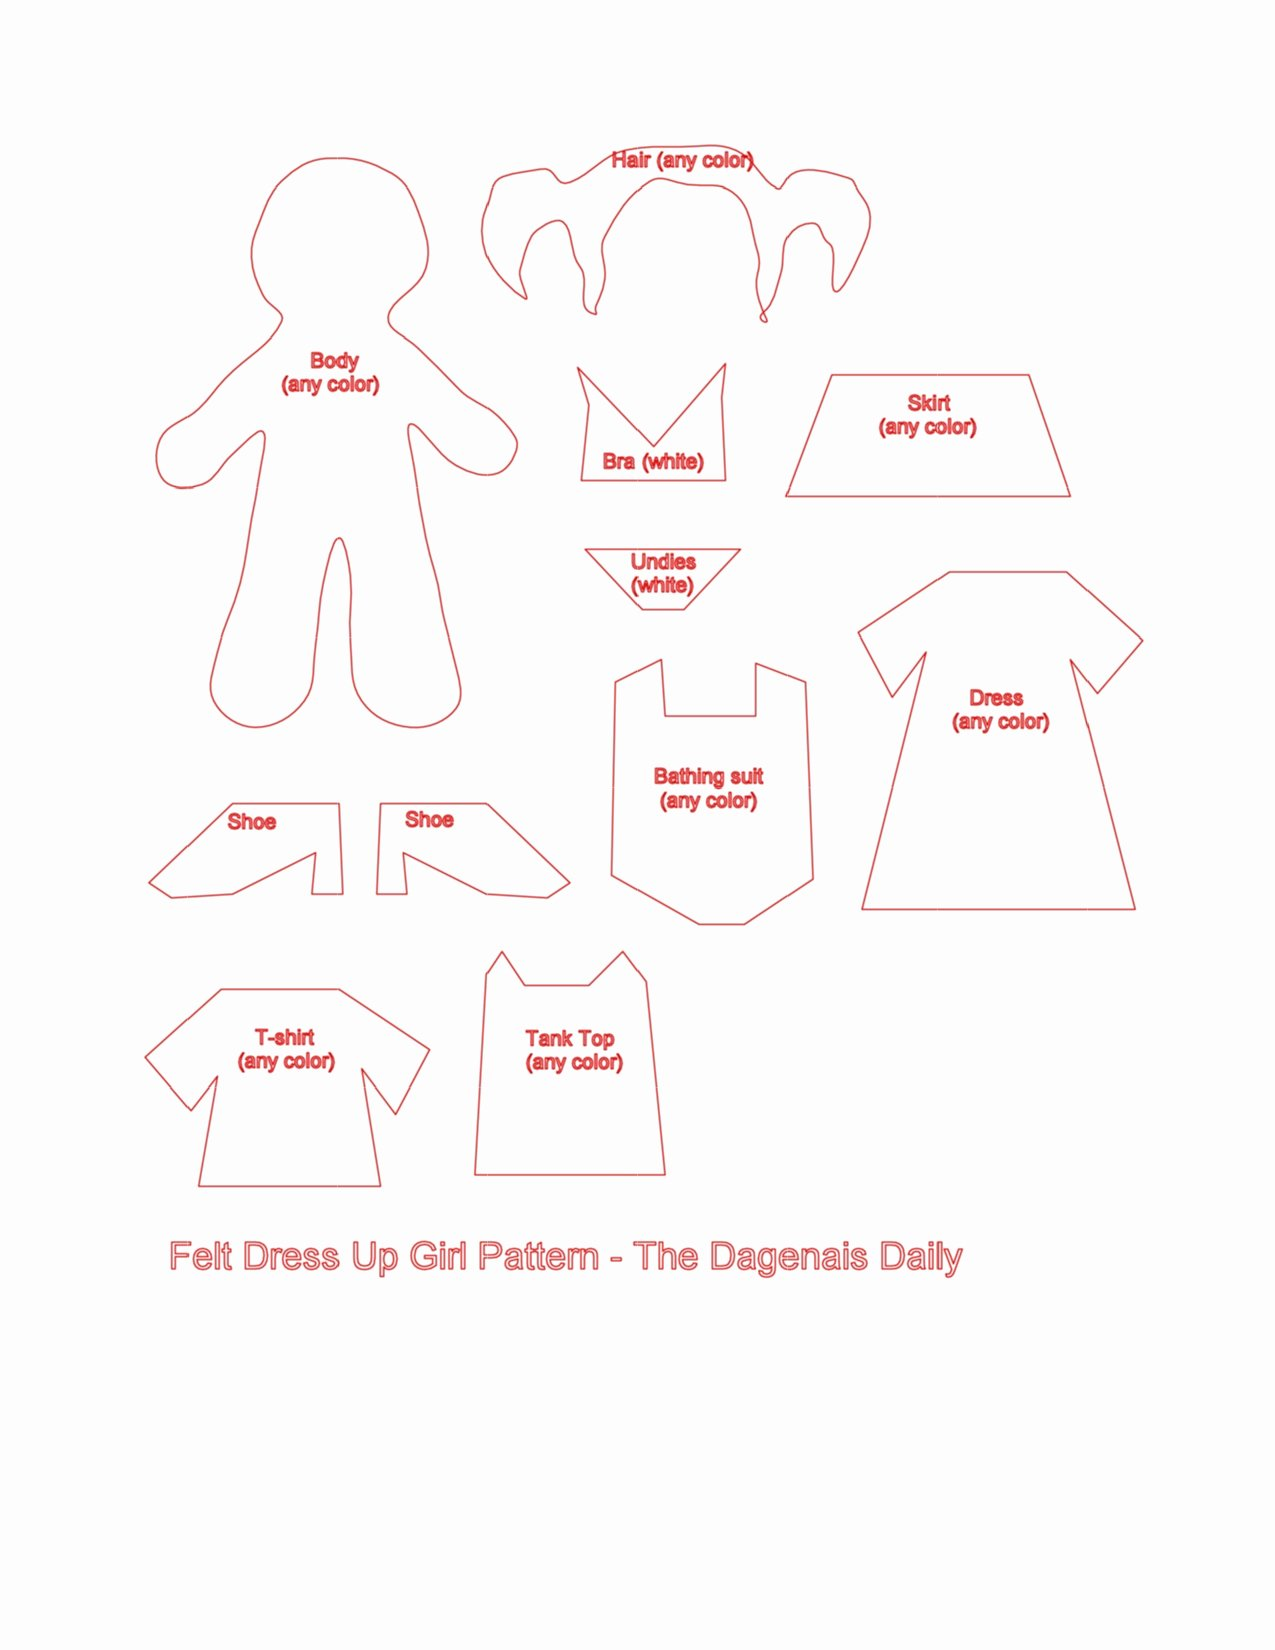 Boy and Girl Template Unique Felt Mr Mrs Potato Head and Boy Girl Dress Up Sets